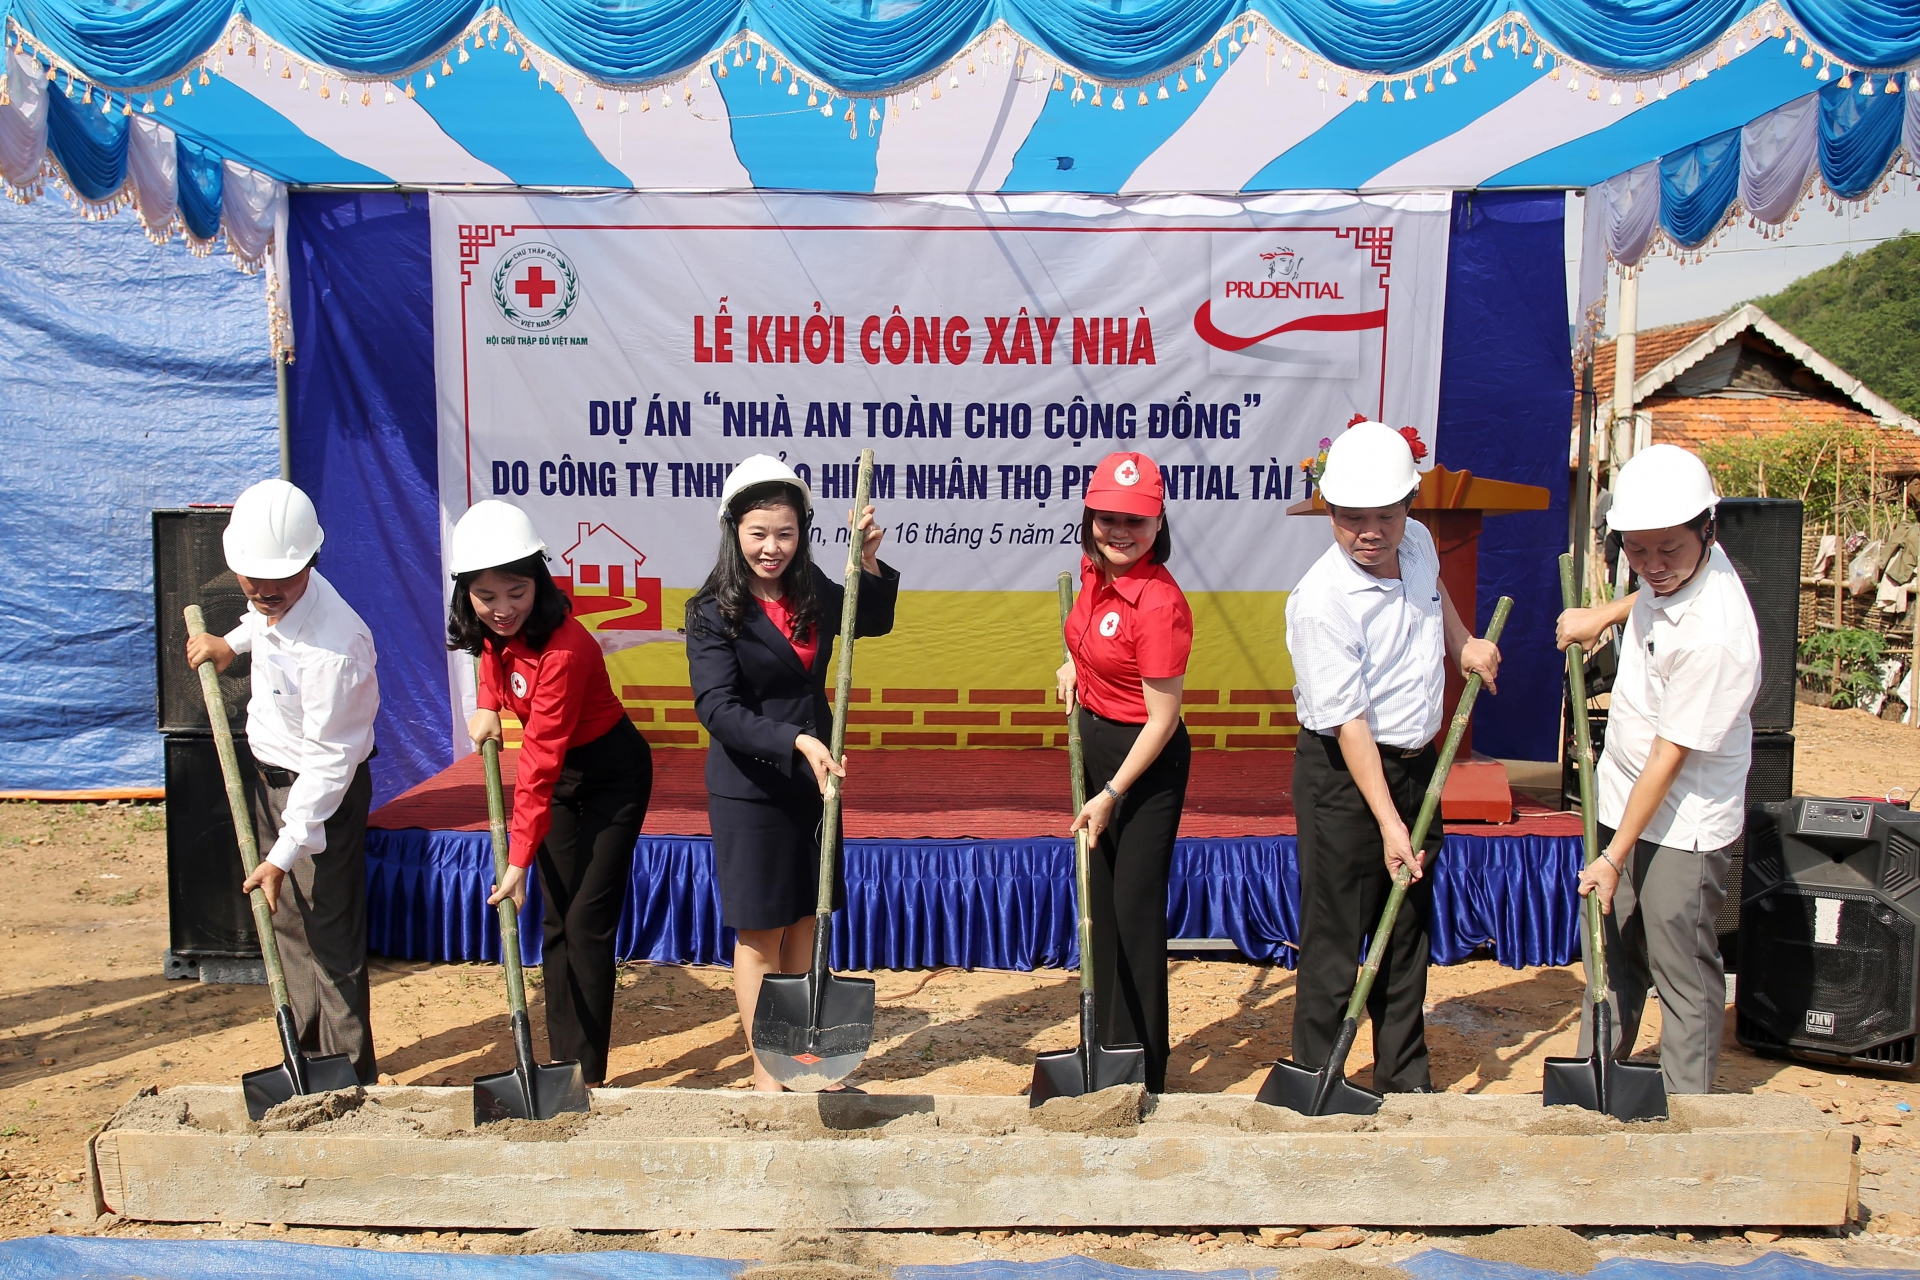 Prudential Vietnam builds disaster-resilient homes in typhoon areas